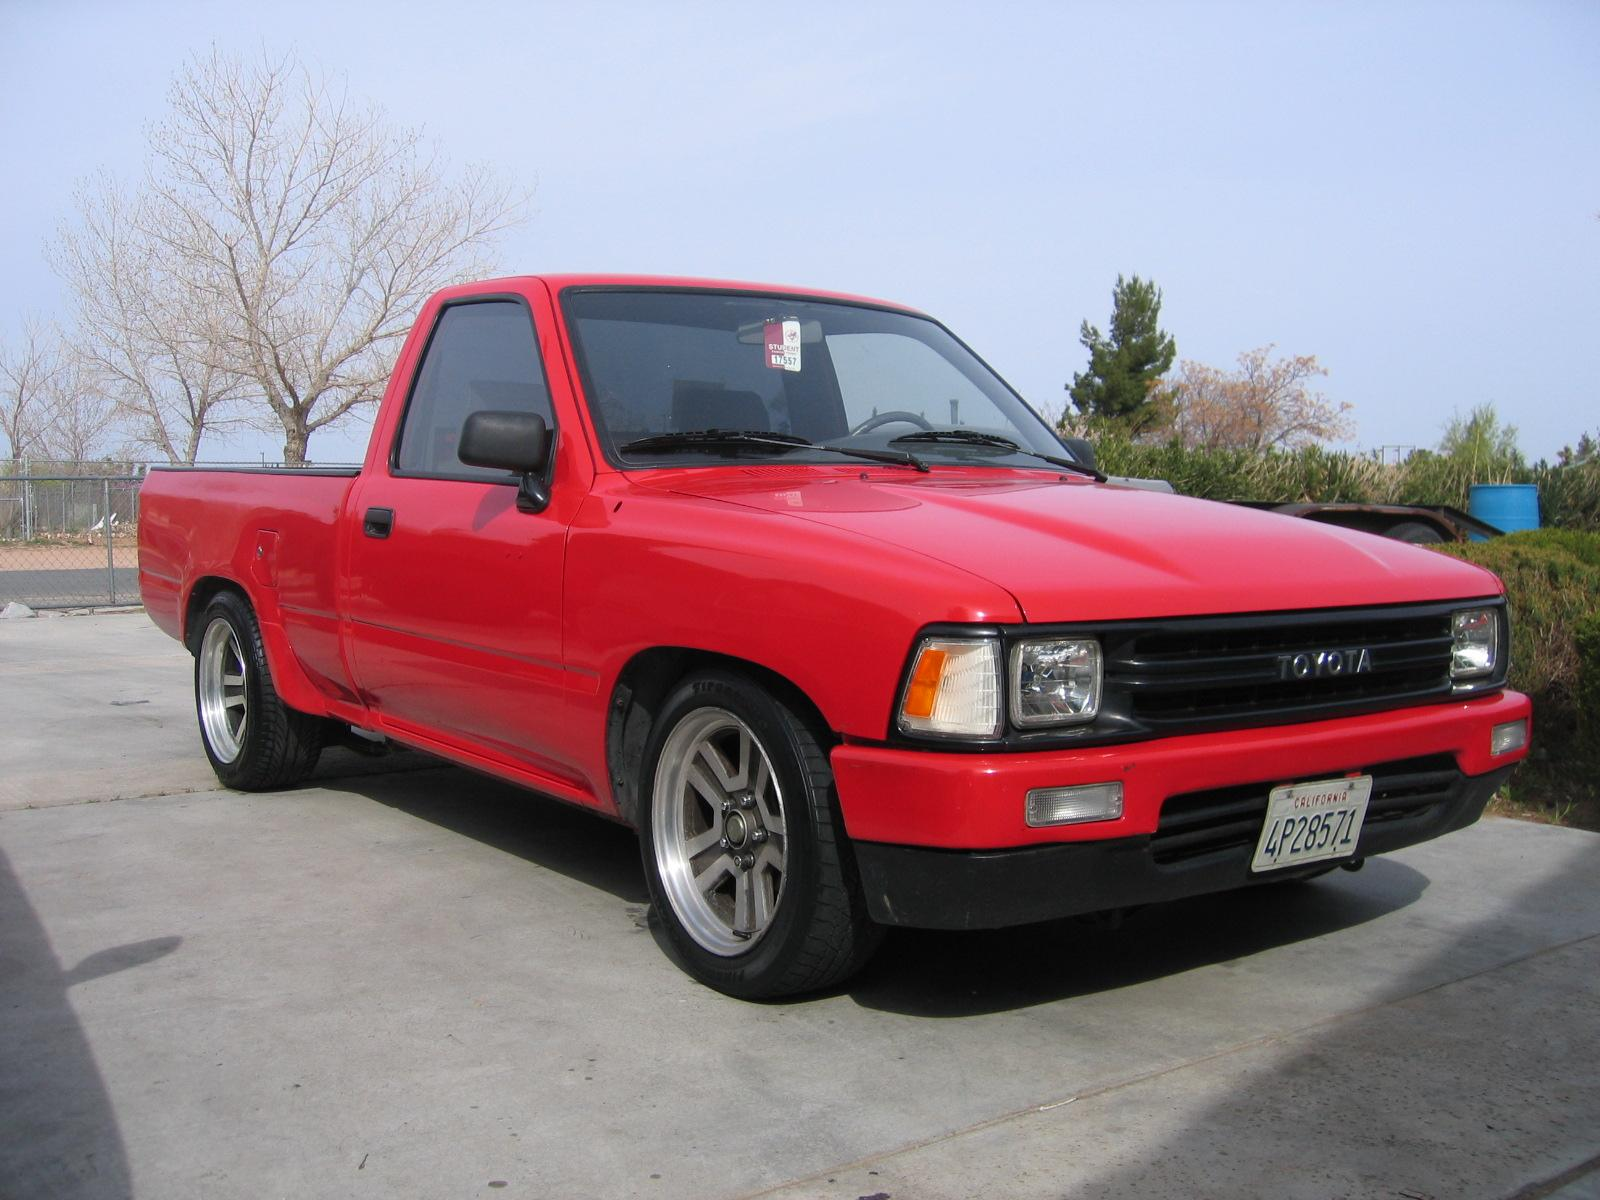 1991 toyota pickup information and photos zombiedrive. Black Bedroom Furniture Sets. Home Design Ideas